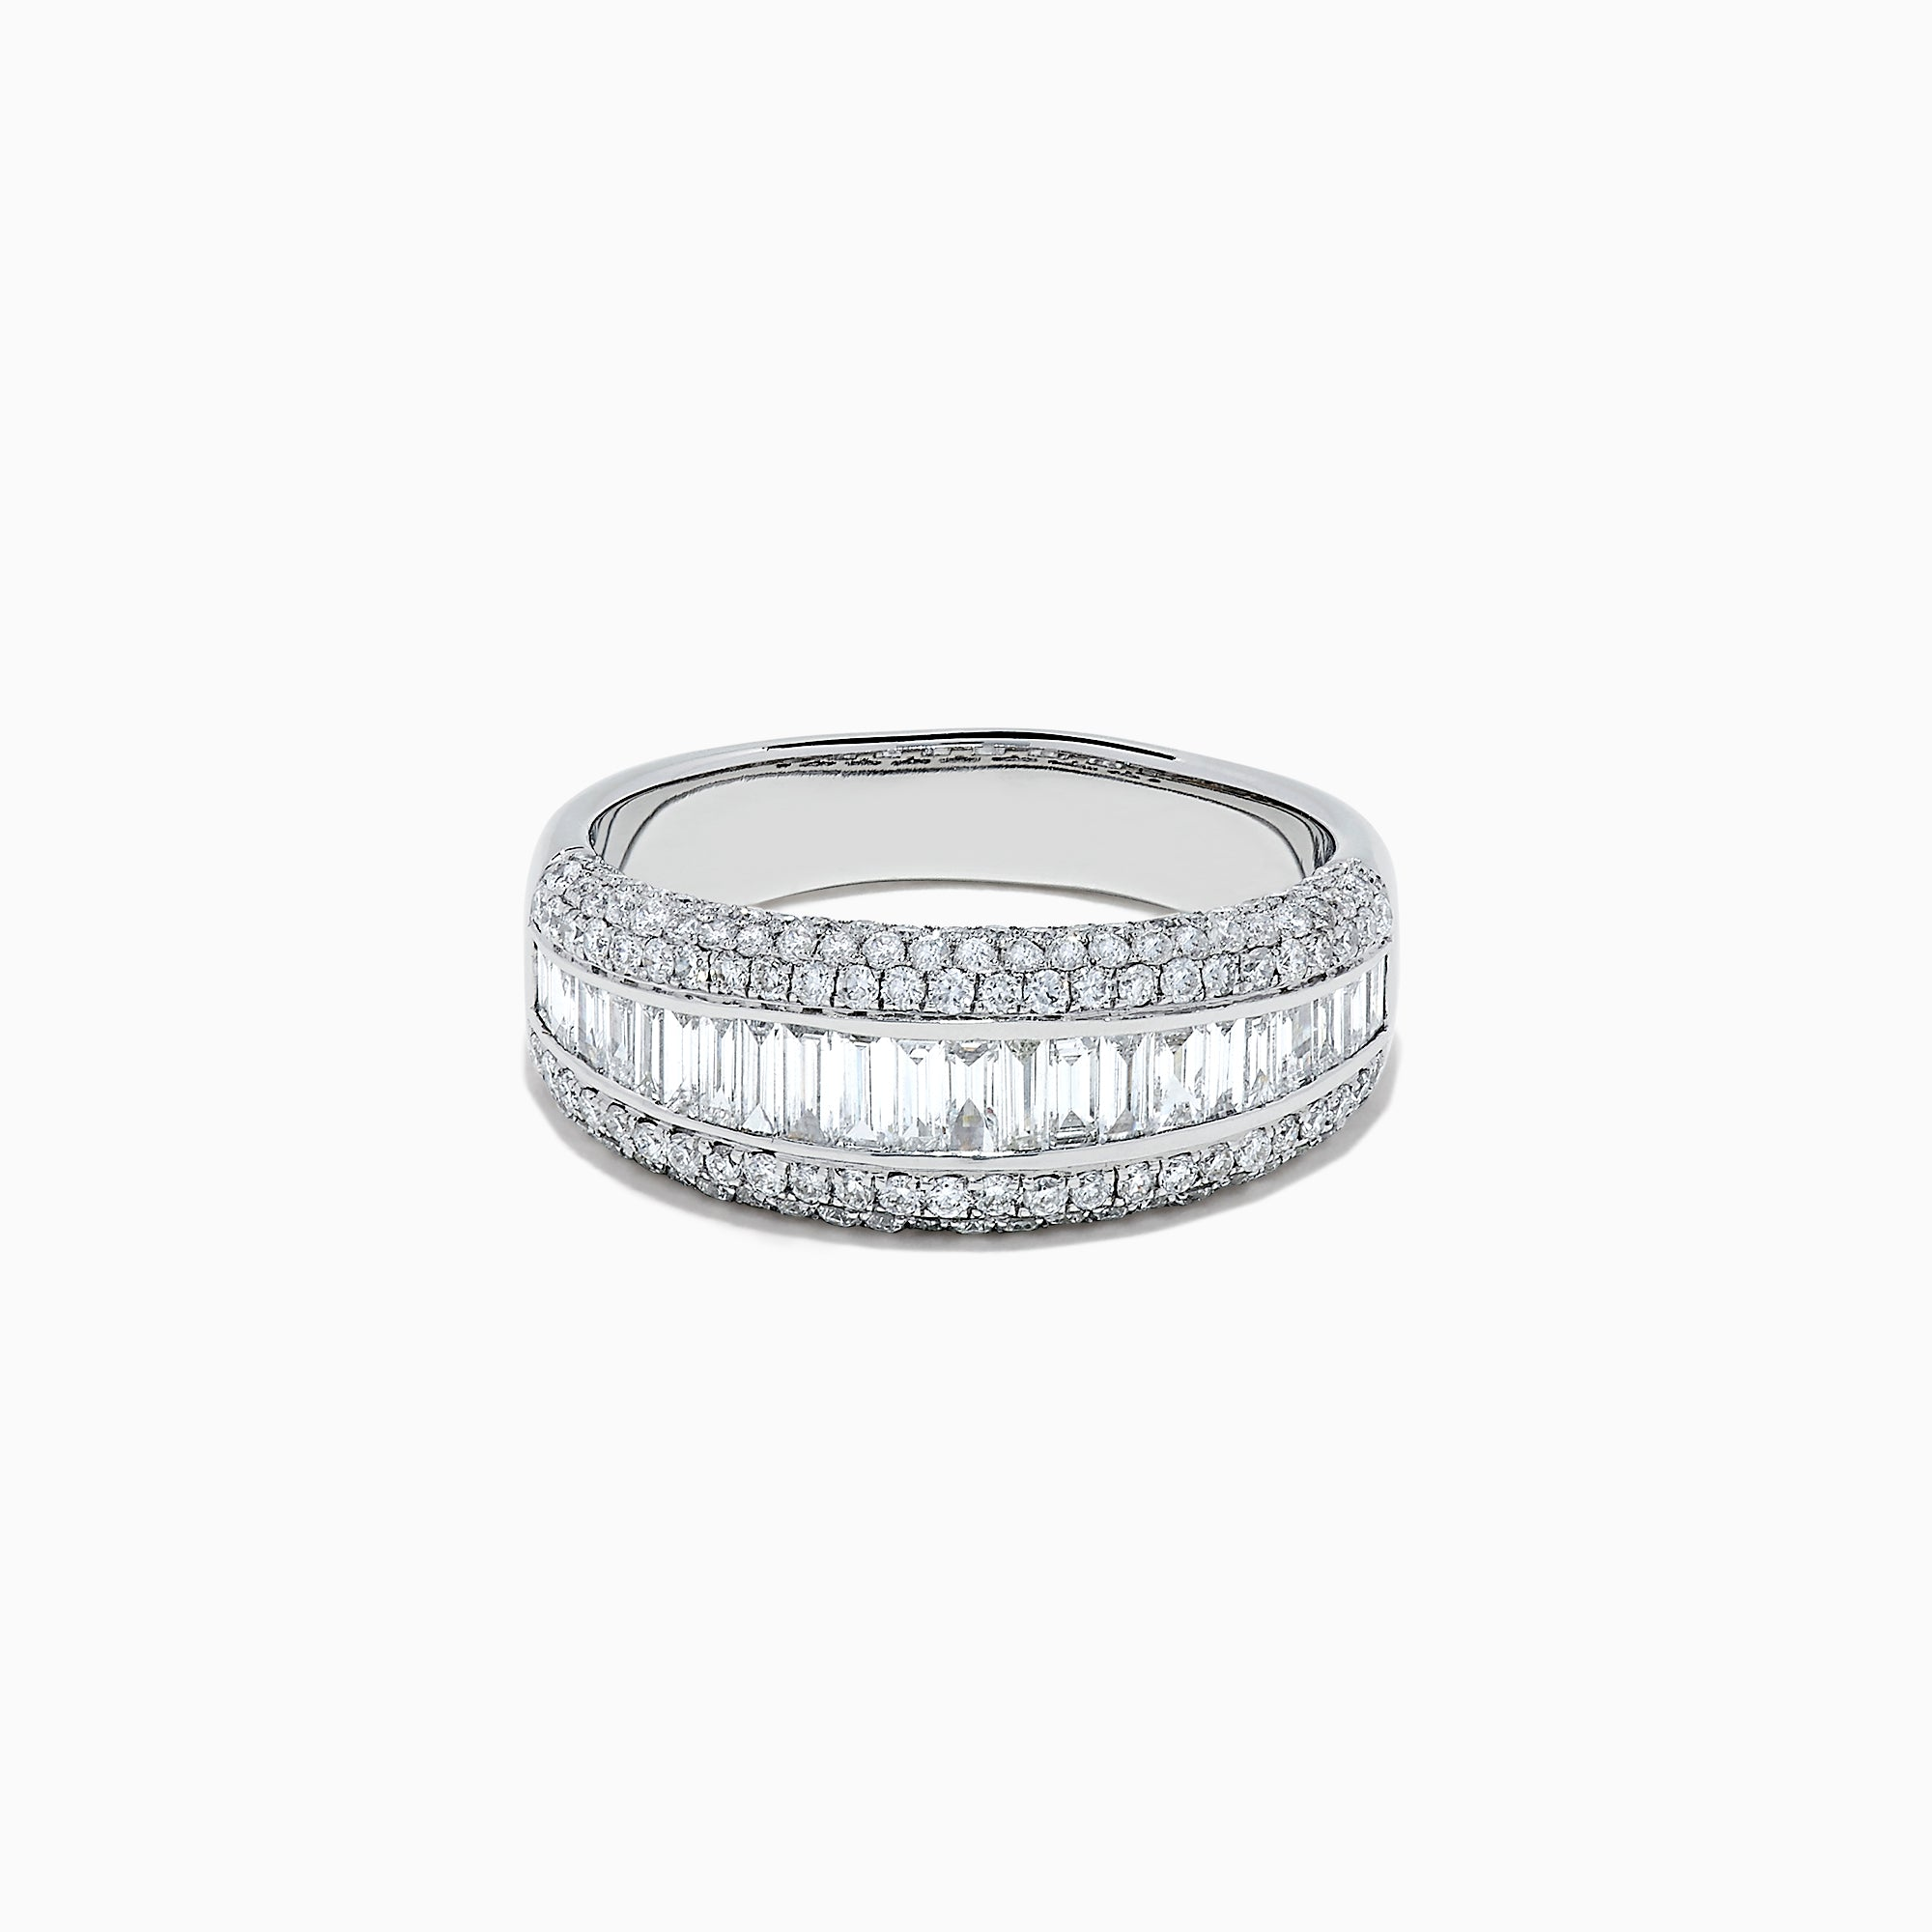 Effy 14K White Gold Diamond Ring, 1.21 TCW